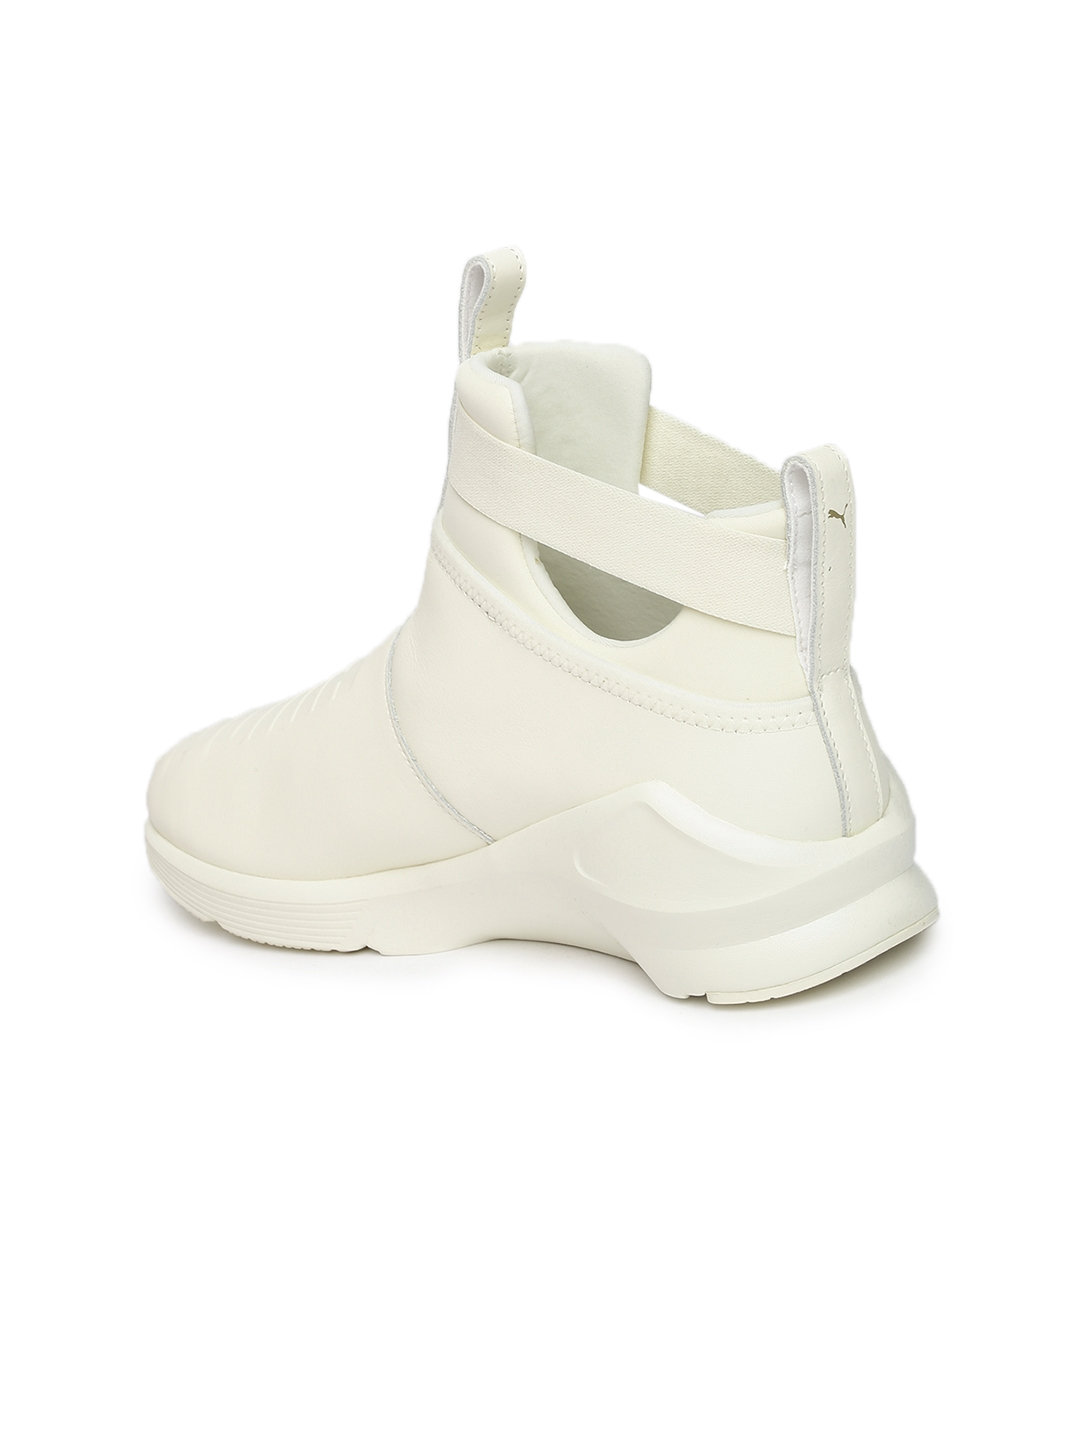 Buy Puma Women White Leather Mid Top Fierce Strap Training Or Gym ... ced9f33b6